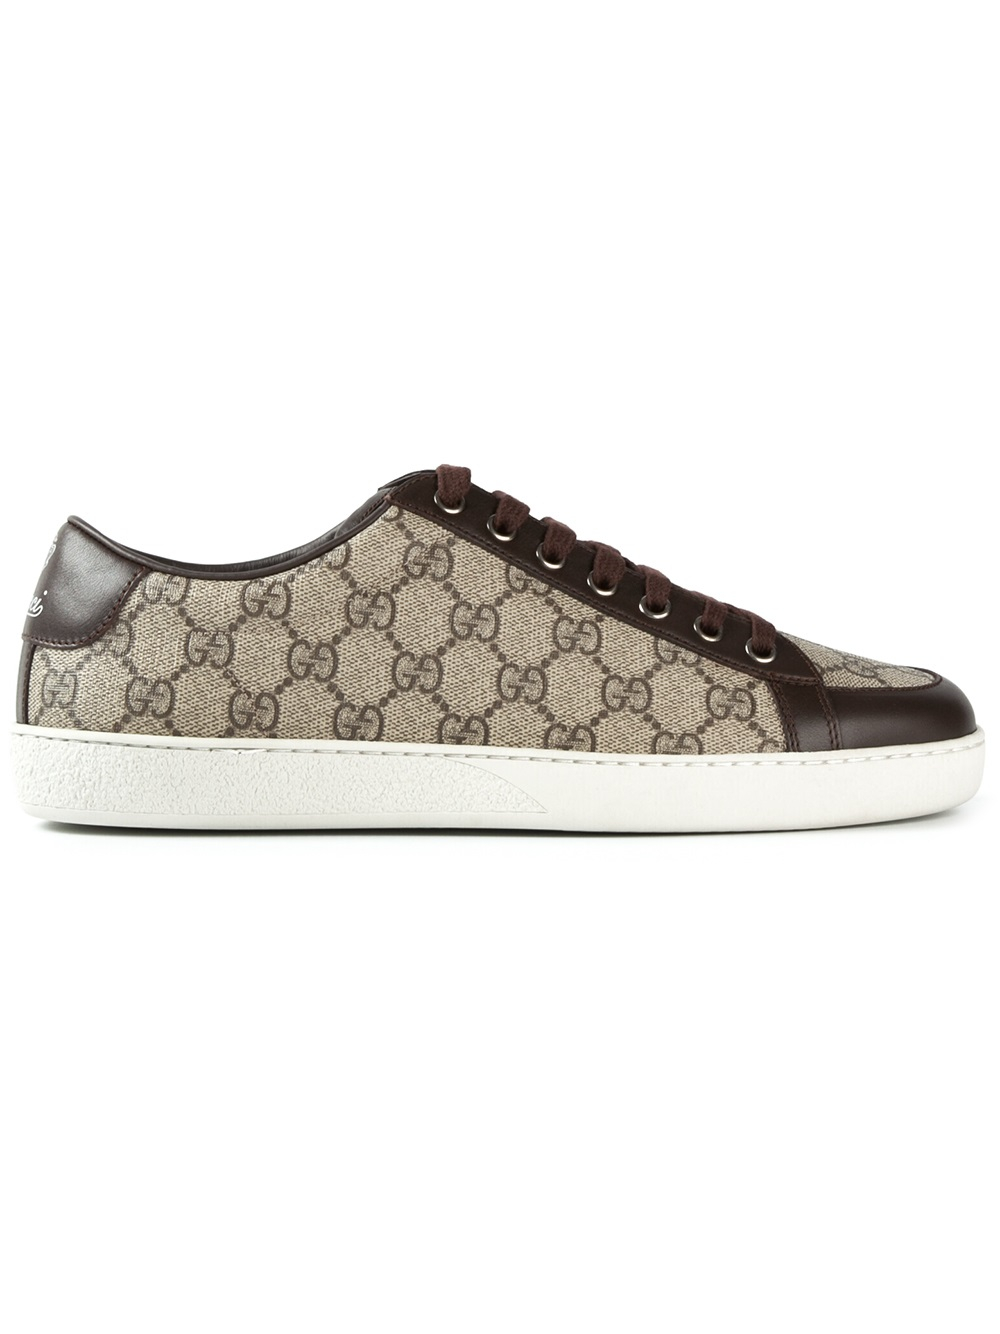 Gucci Logo Trainers in Brown for Men - Lyst